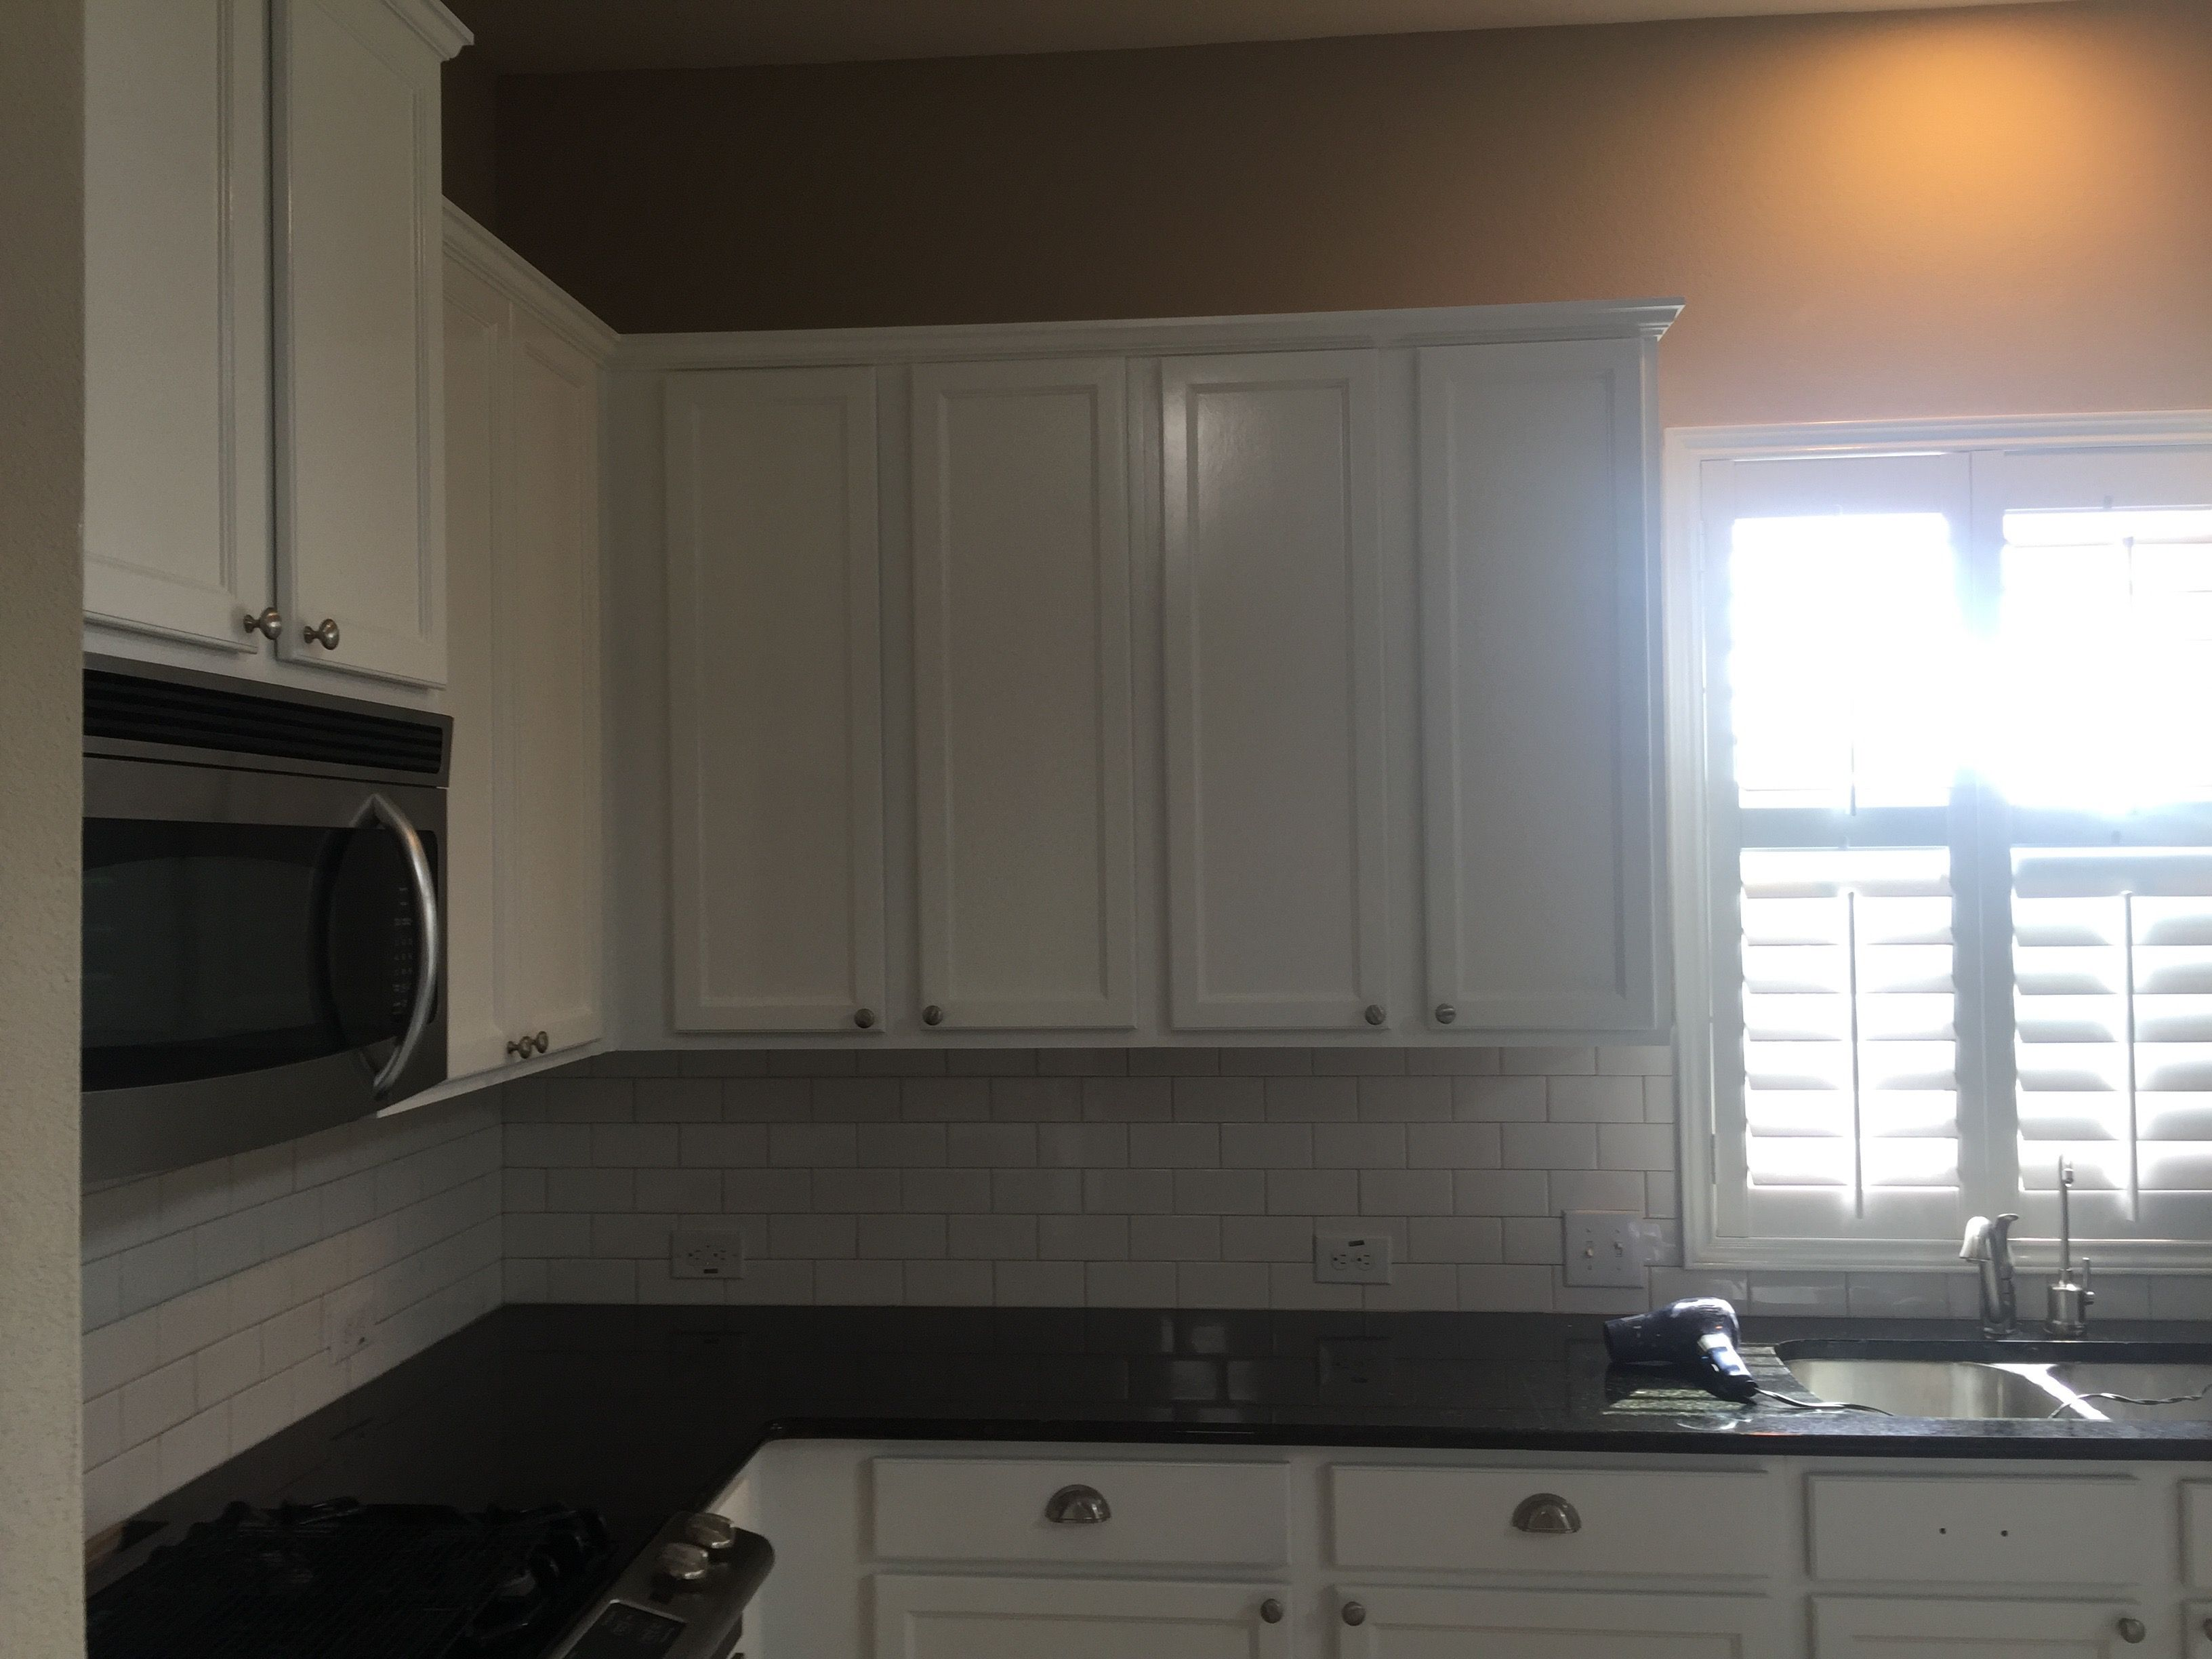 We painted these cabinets bright white and put in a new tile backsplash to give this